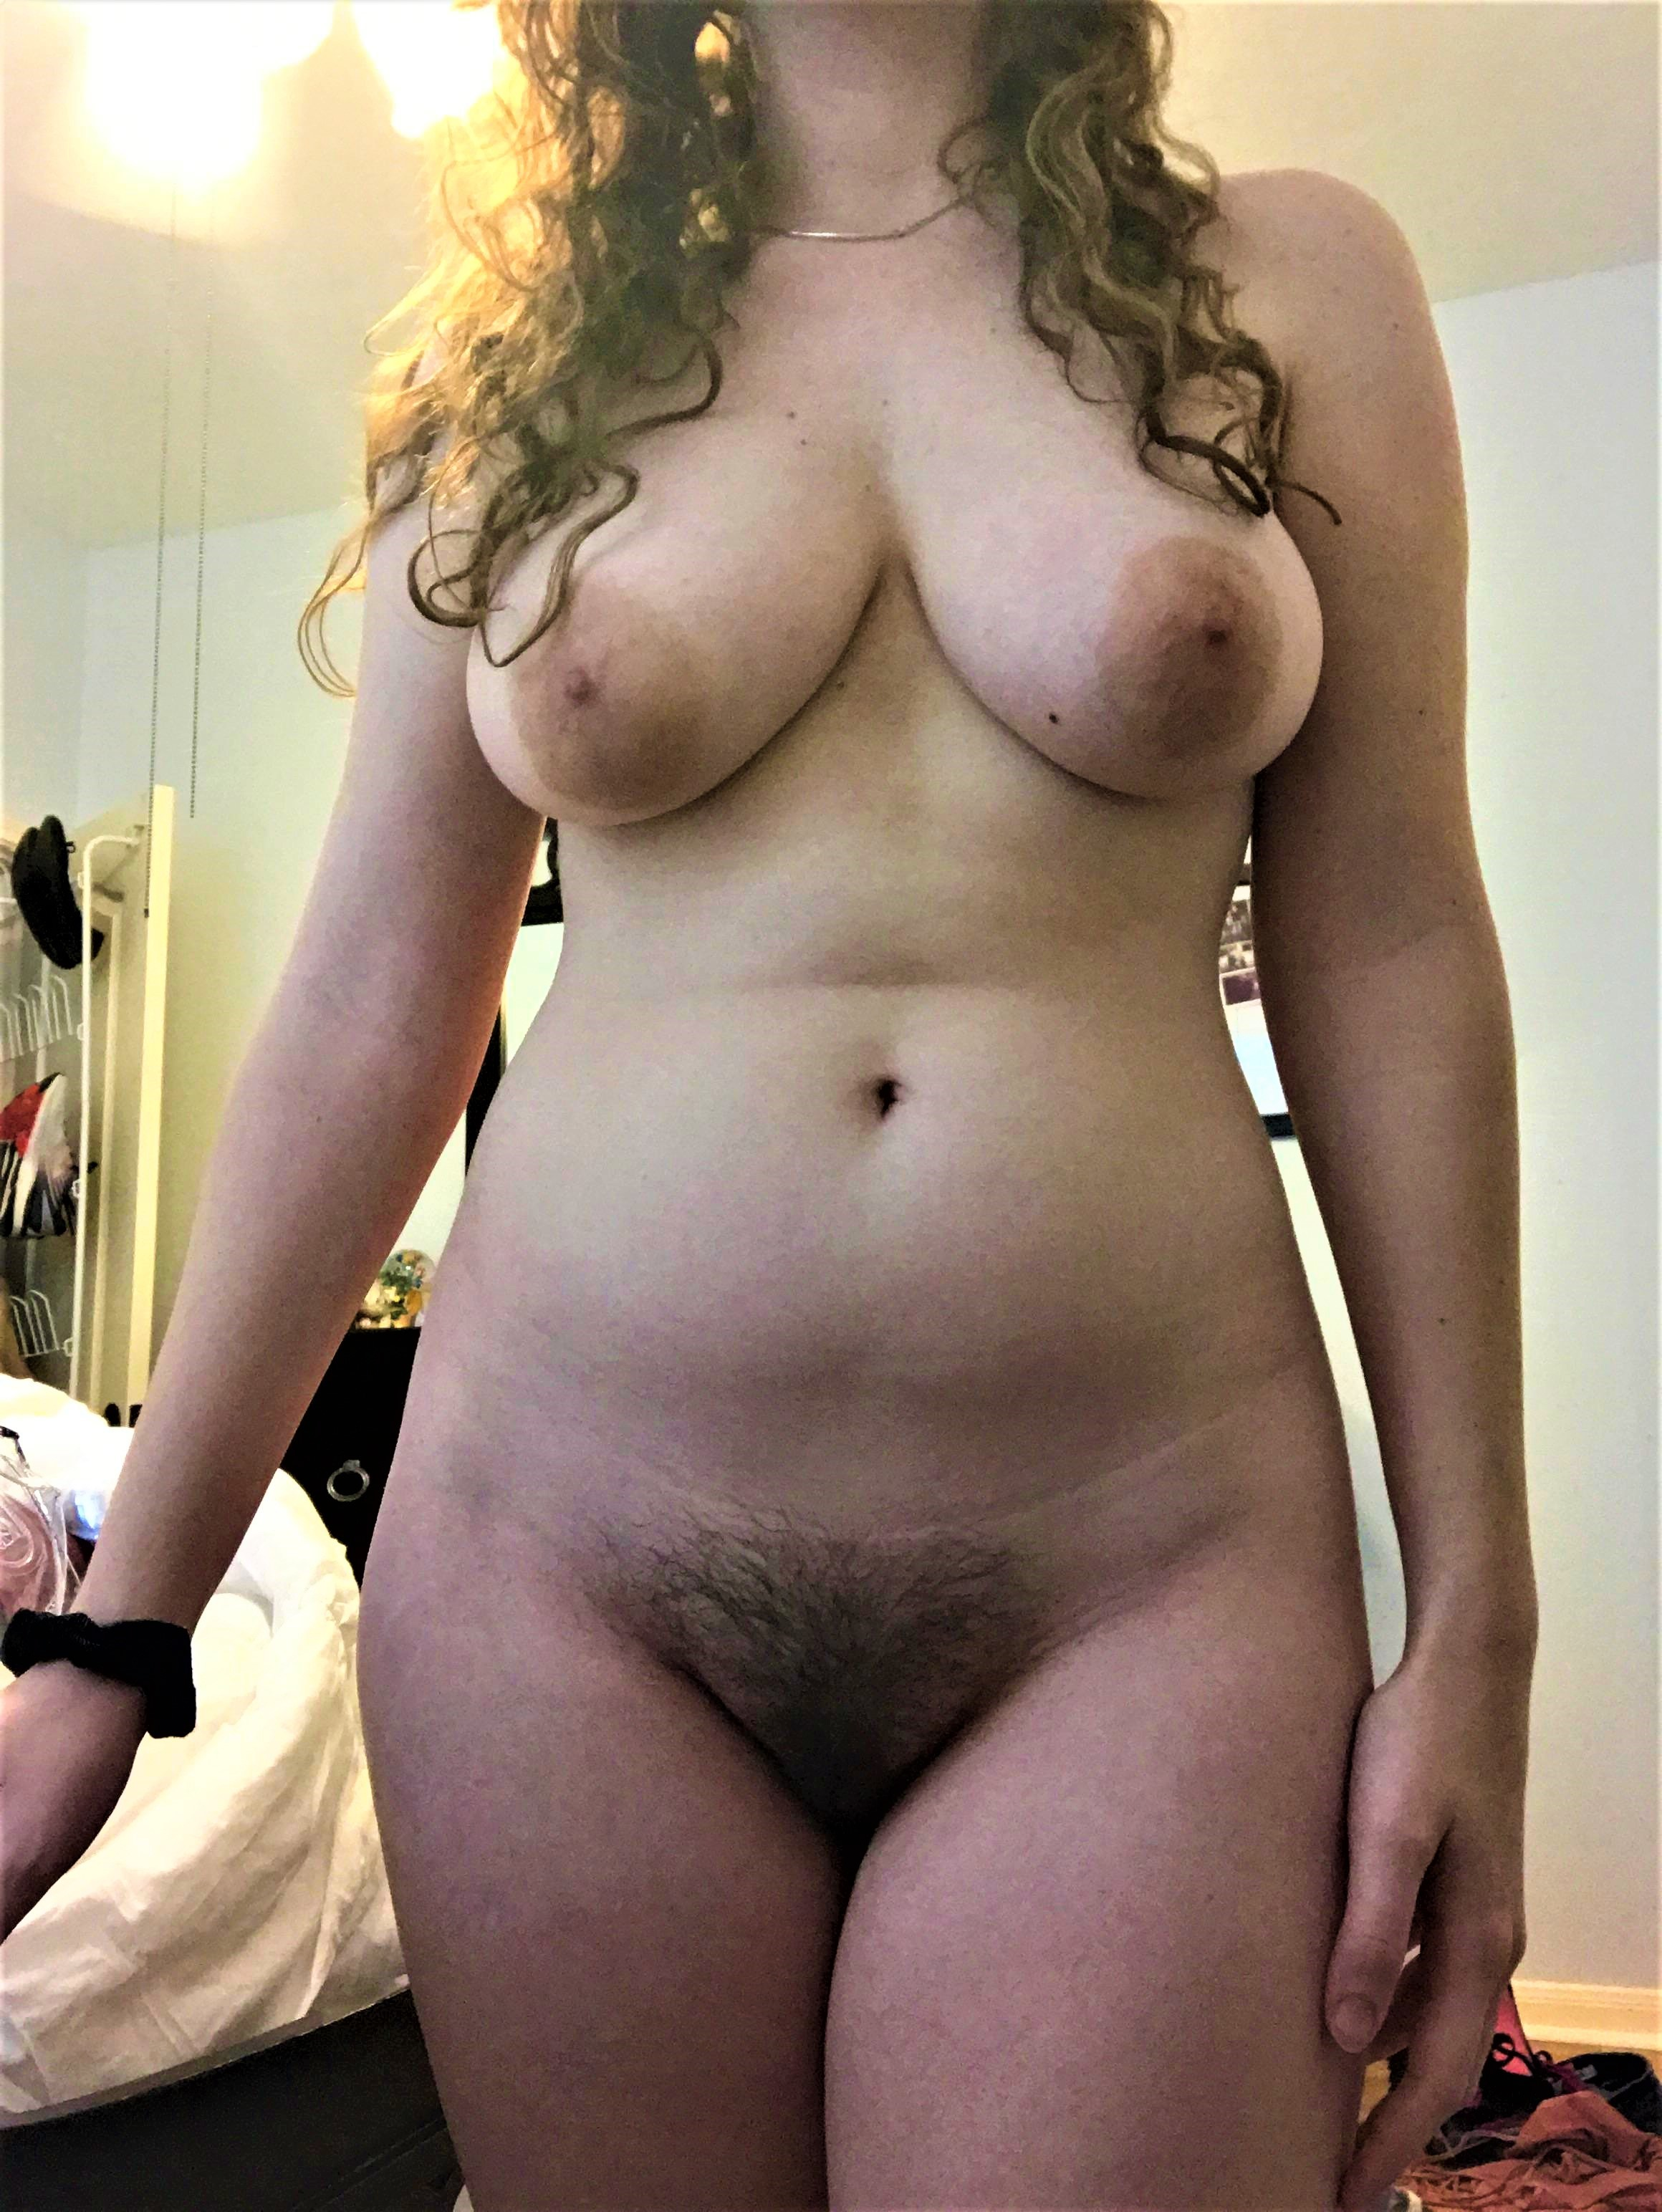 black huge ass pussy preaparing for fuck amateur Amateur, Asian, Curvyasian, Firmtits, Fullfrontal, Hairypussy, Hotbody, Naked, Nicetits, Nude, Thai